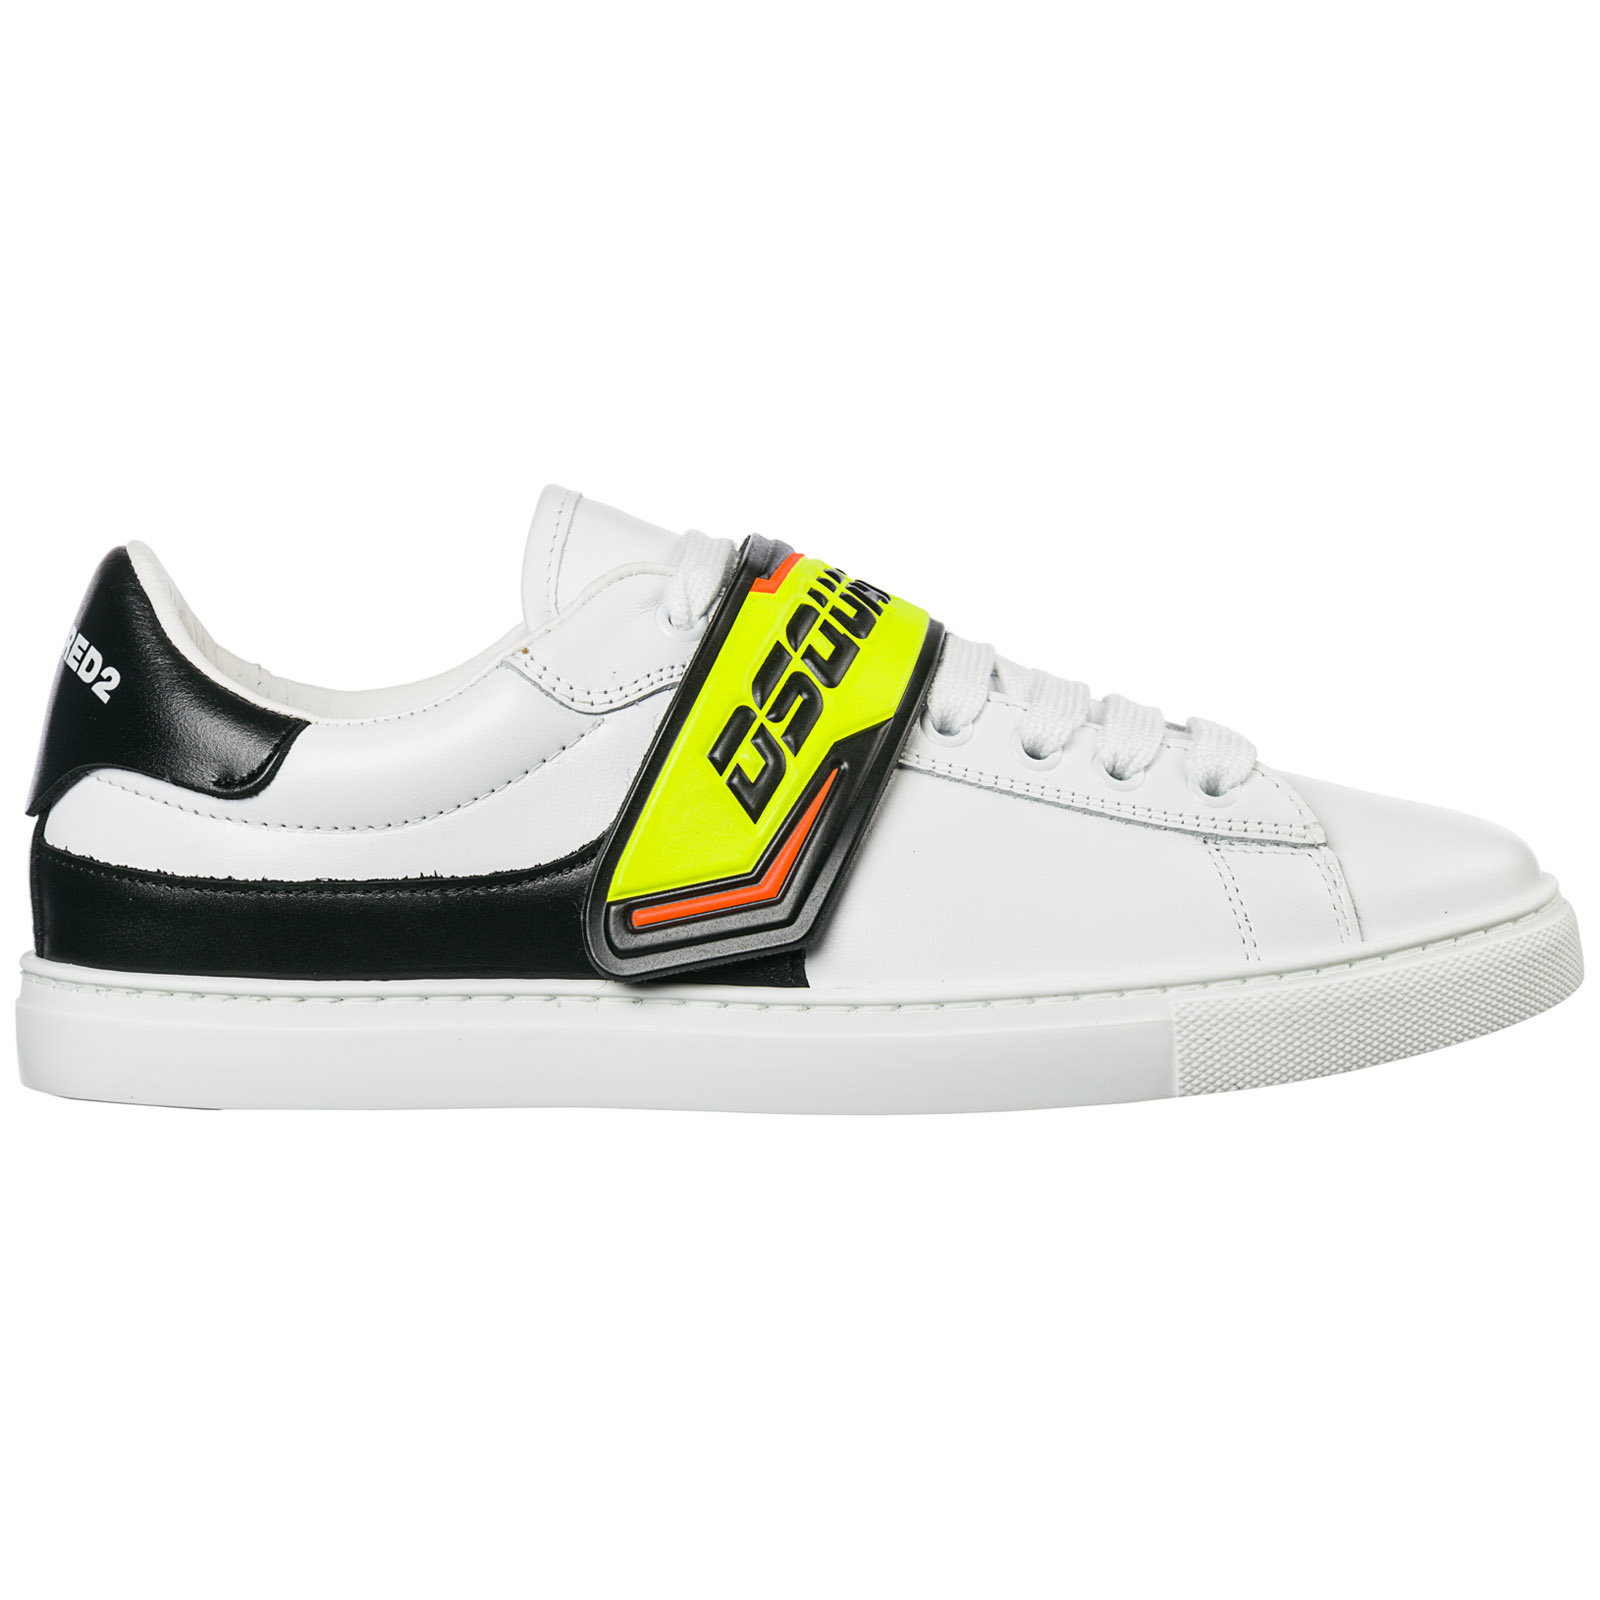 Men's shoes leather trainers sneakers tennis